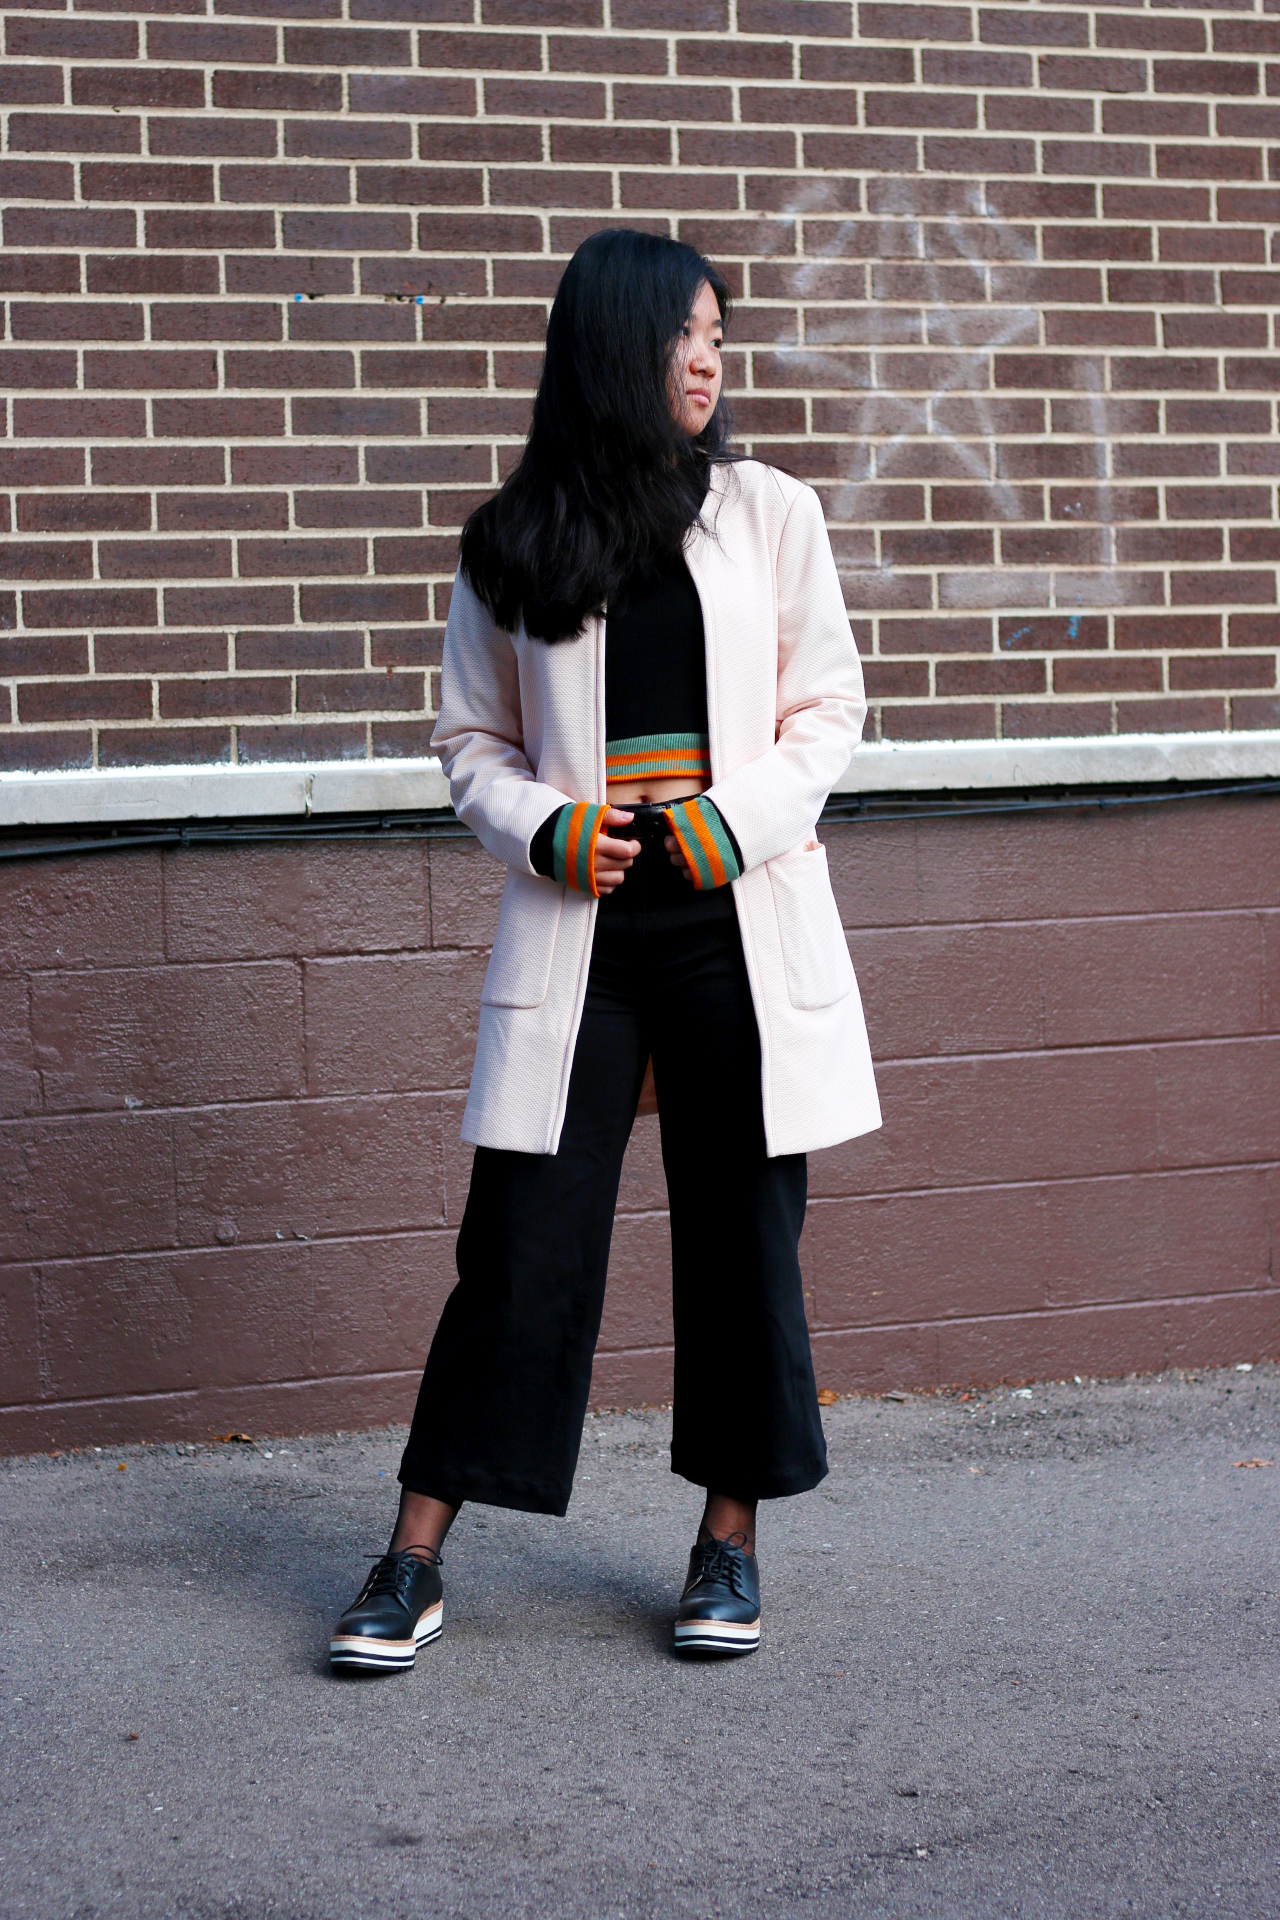 Week of October 15th - Check out the first edition of Street Style!